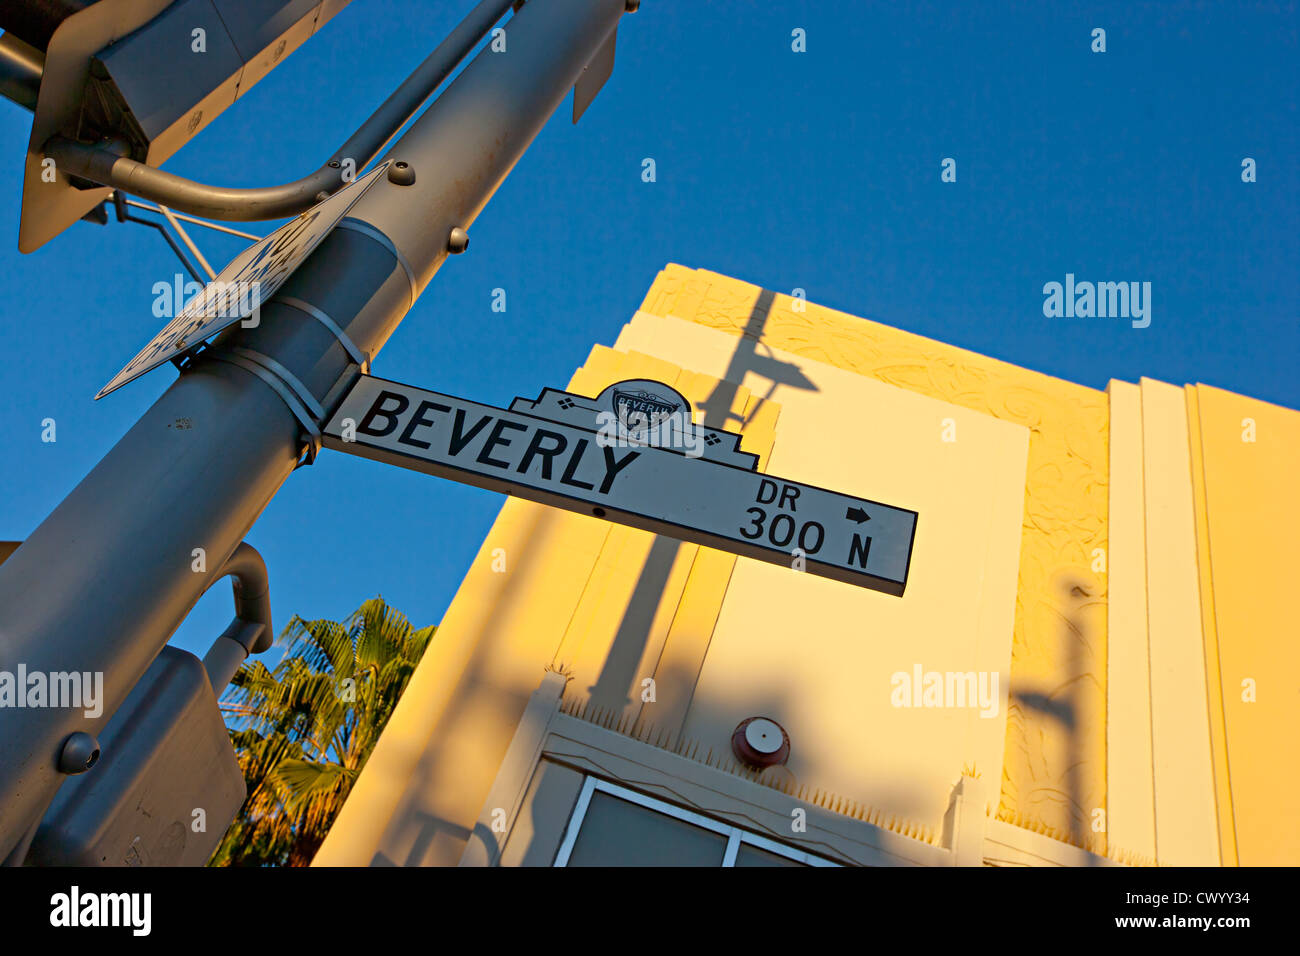 beverly hill road sign LA USA - Stock Image